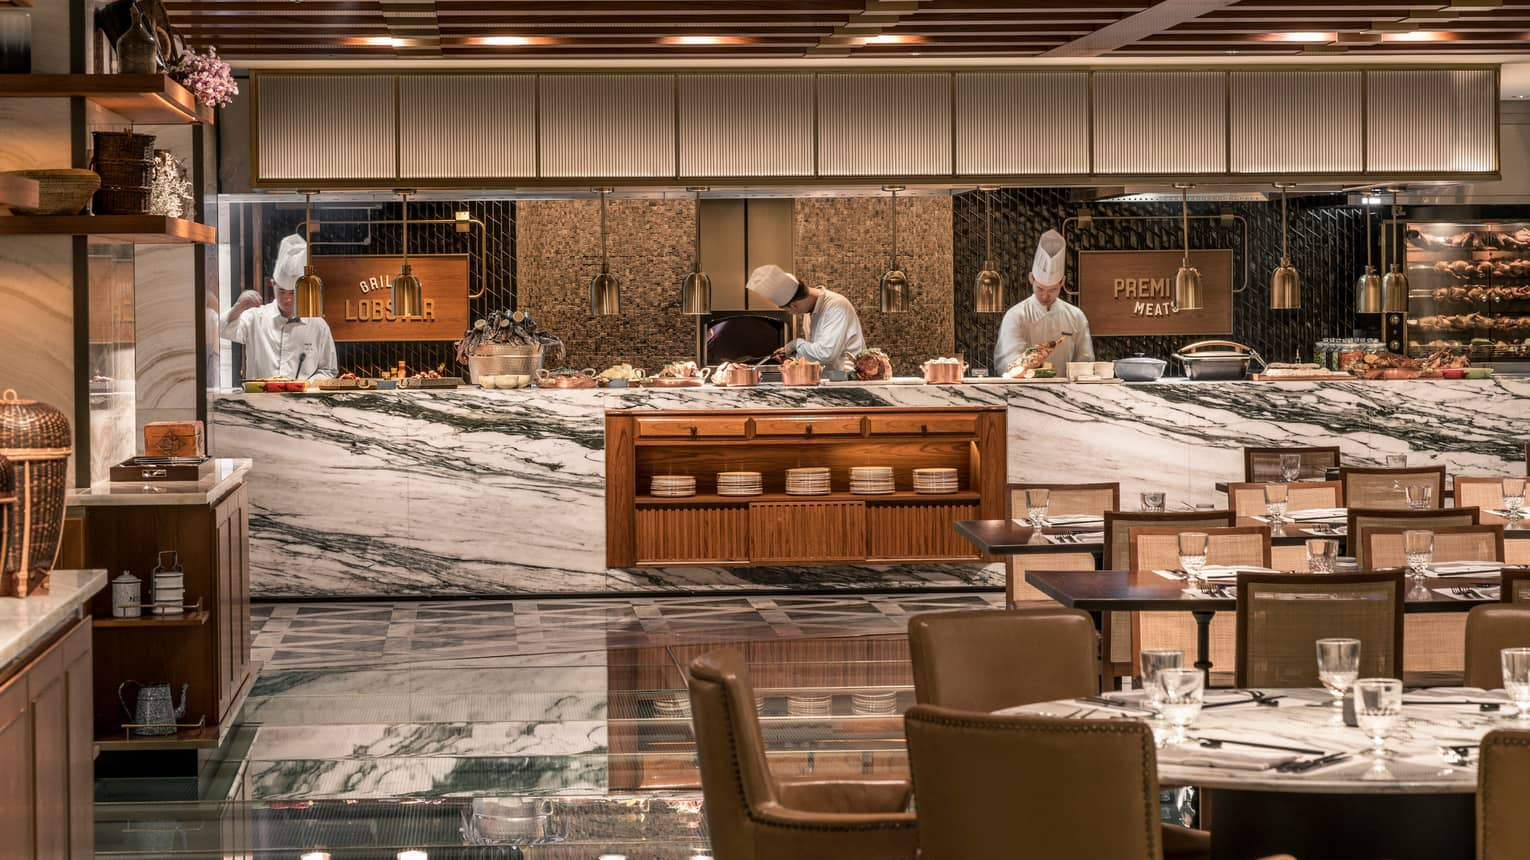 Chefs work behind white marble counter with copper pots at The Market Kitchen